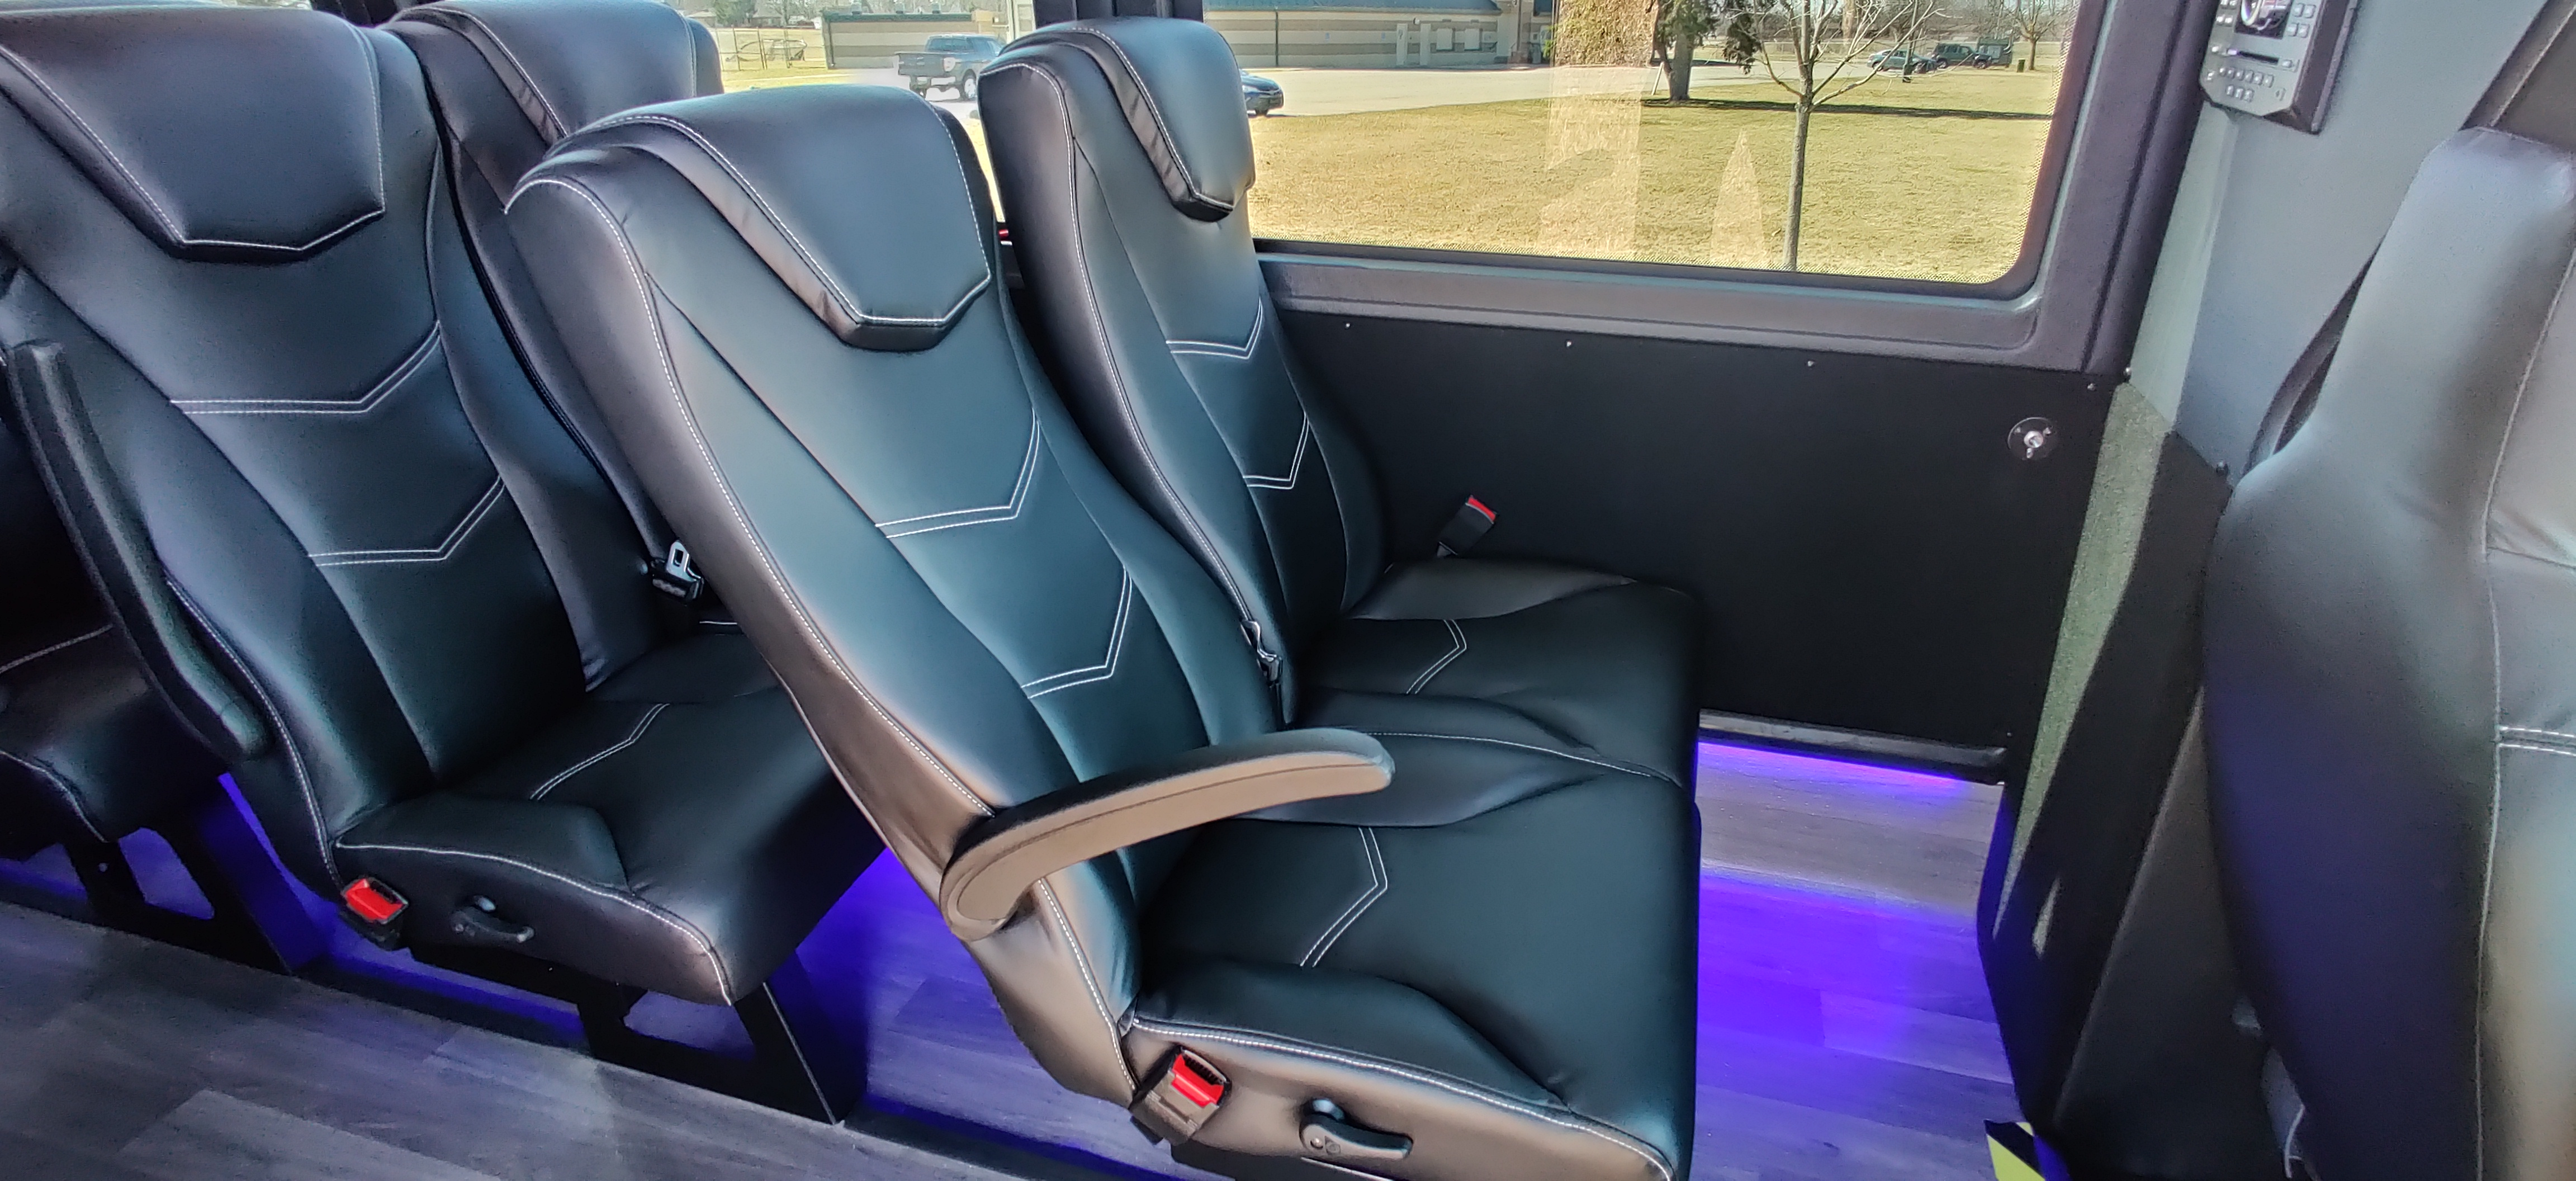 23 Passenger Executive Shuttle Bus Seating Comfort